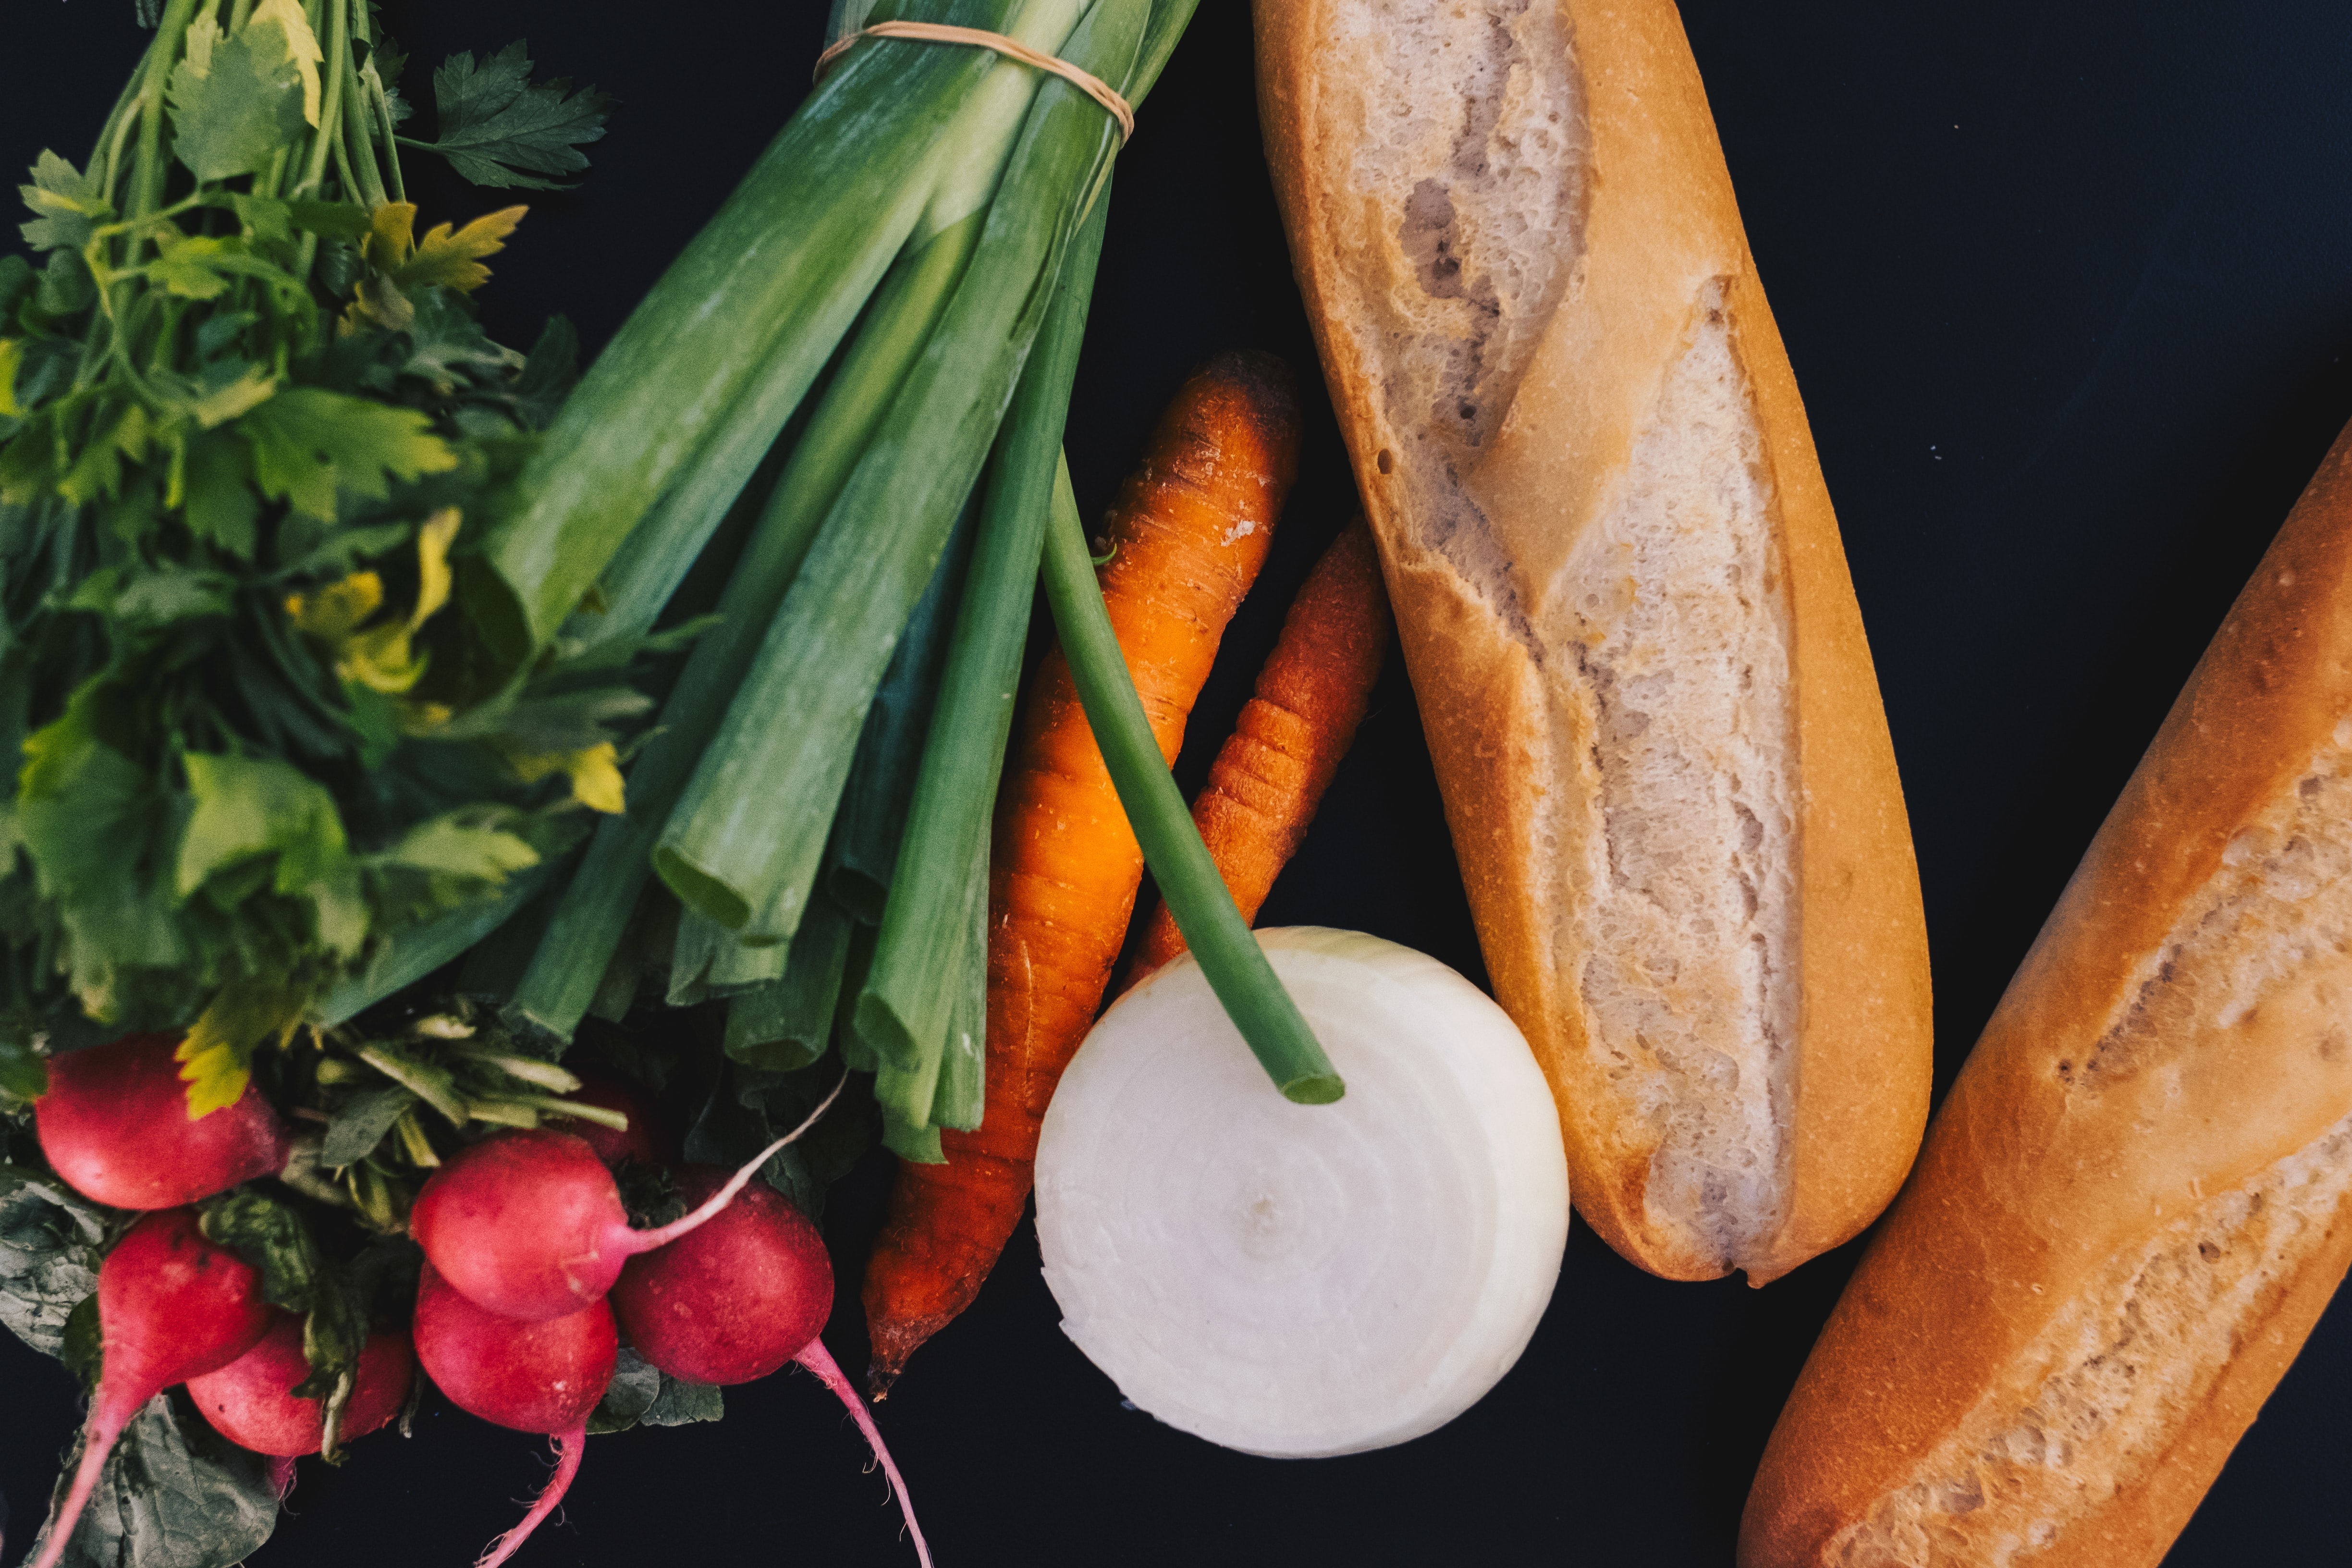 French bread, carrots, spring onions, and red radish